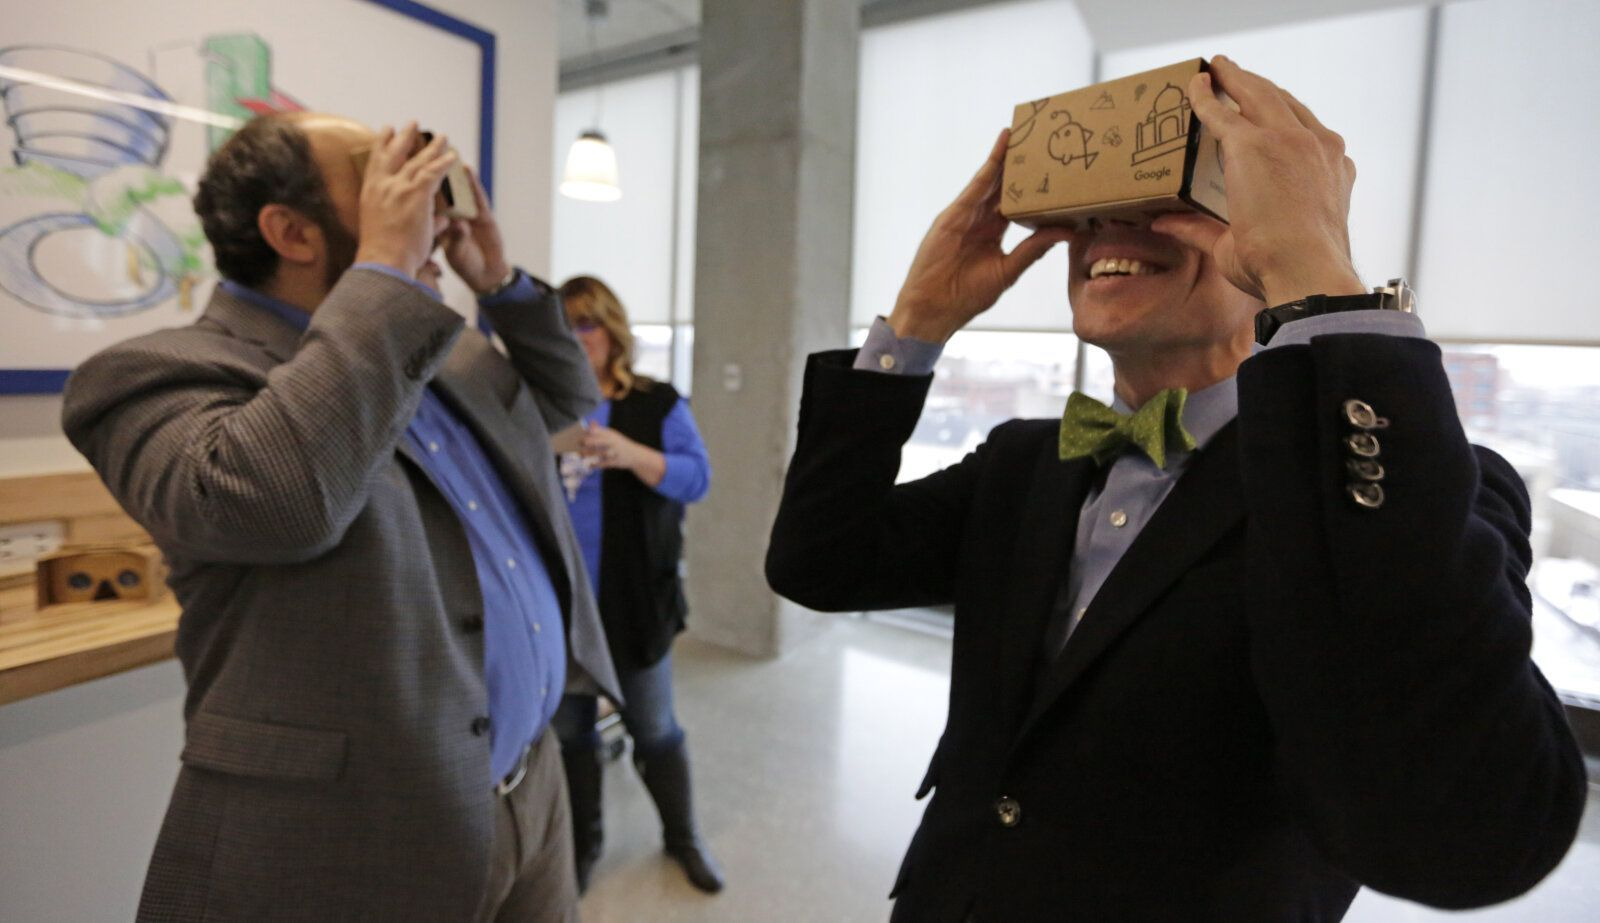 Google open sources Cardboard as it retreats from phone